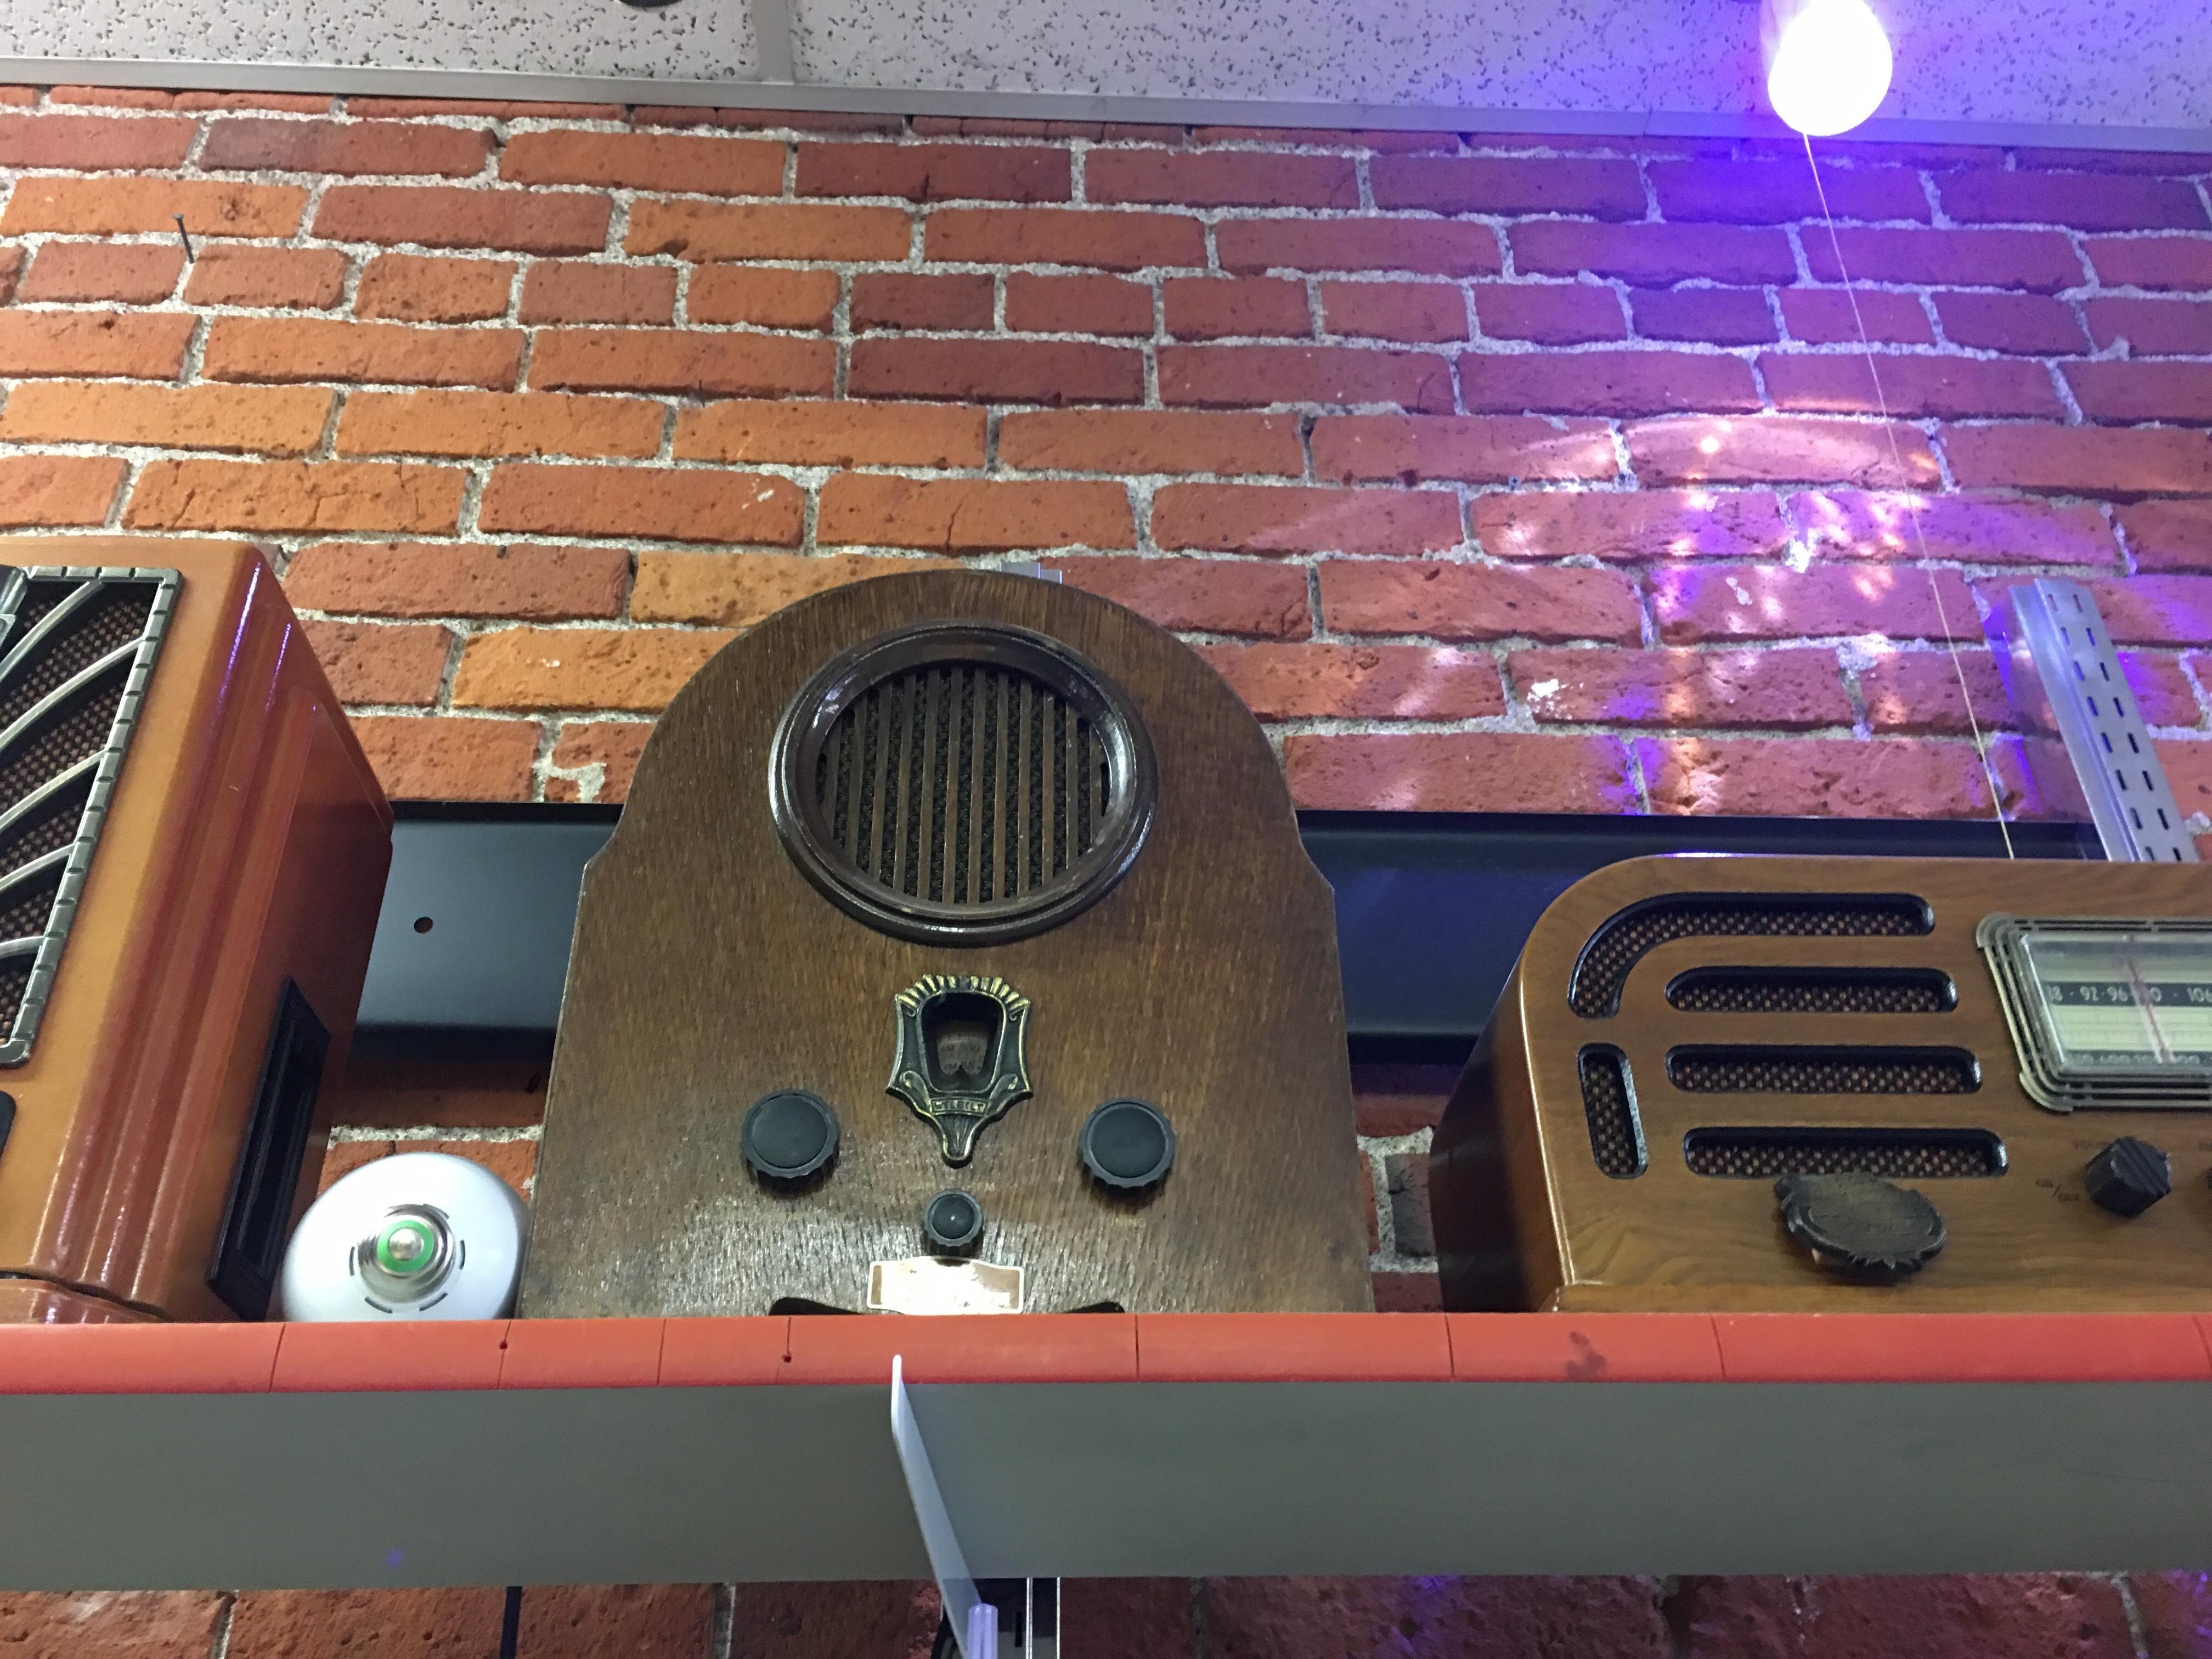 'Radio Days' gives visitors a look into the past